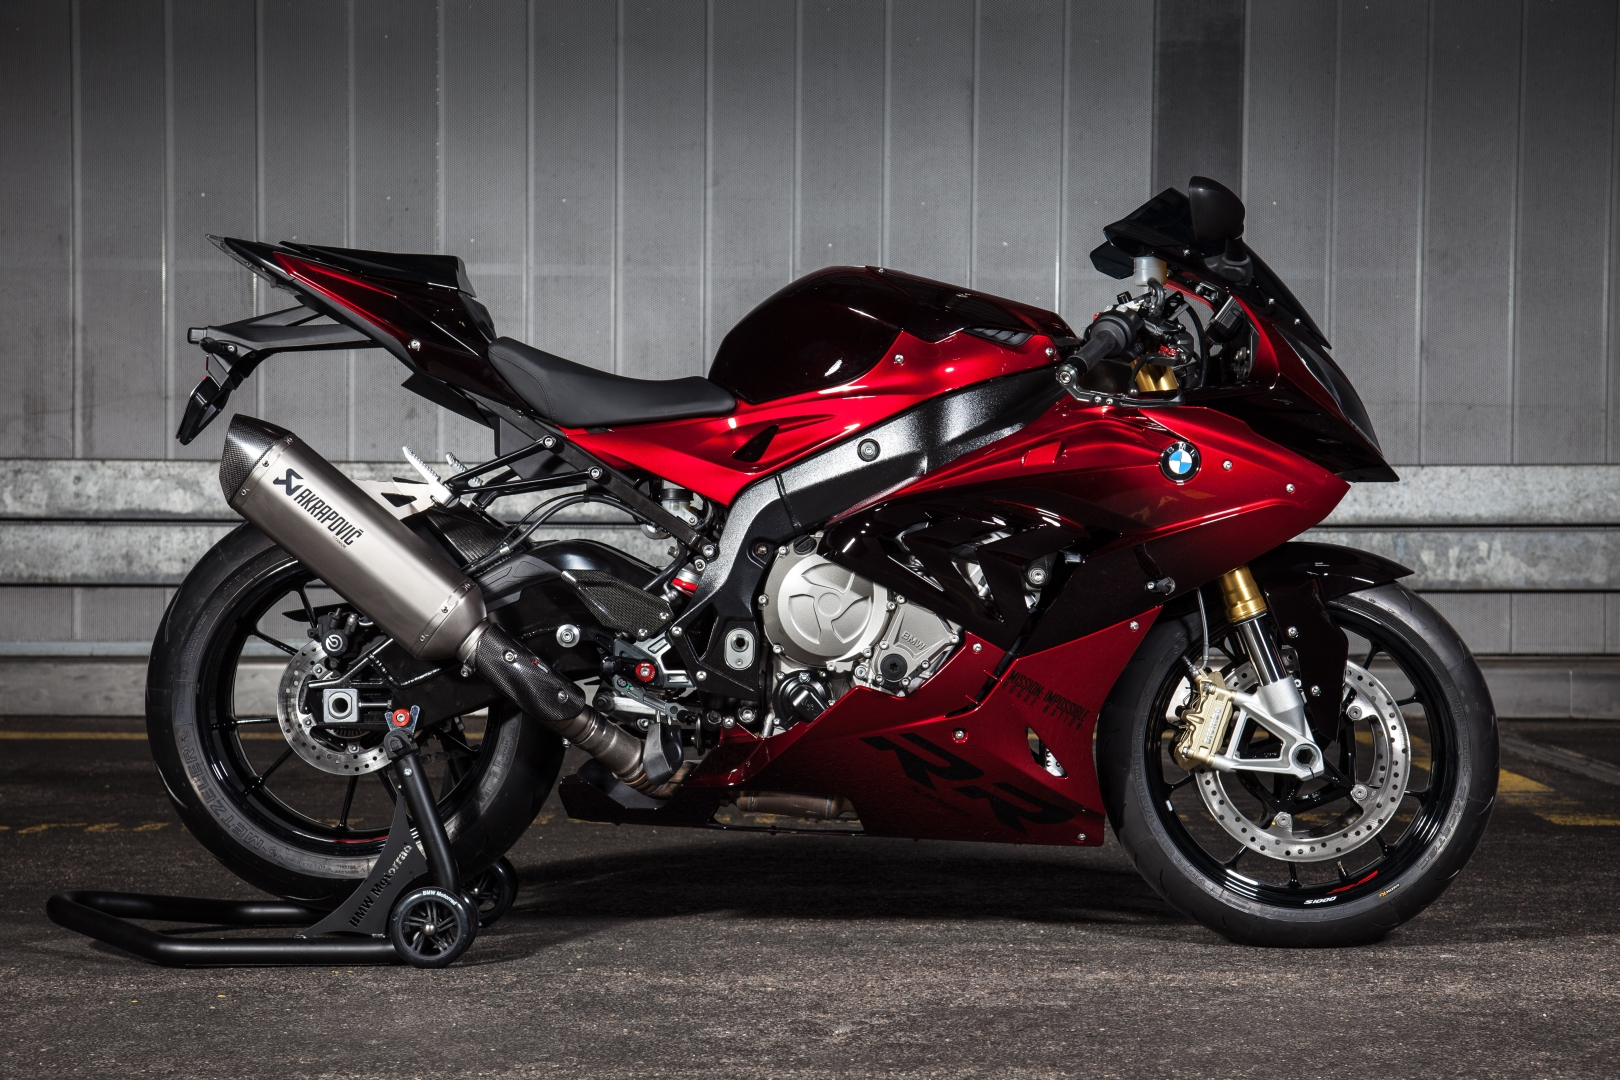 The Making Of Bmw S1000rr Mission Impossible Rogue